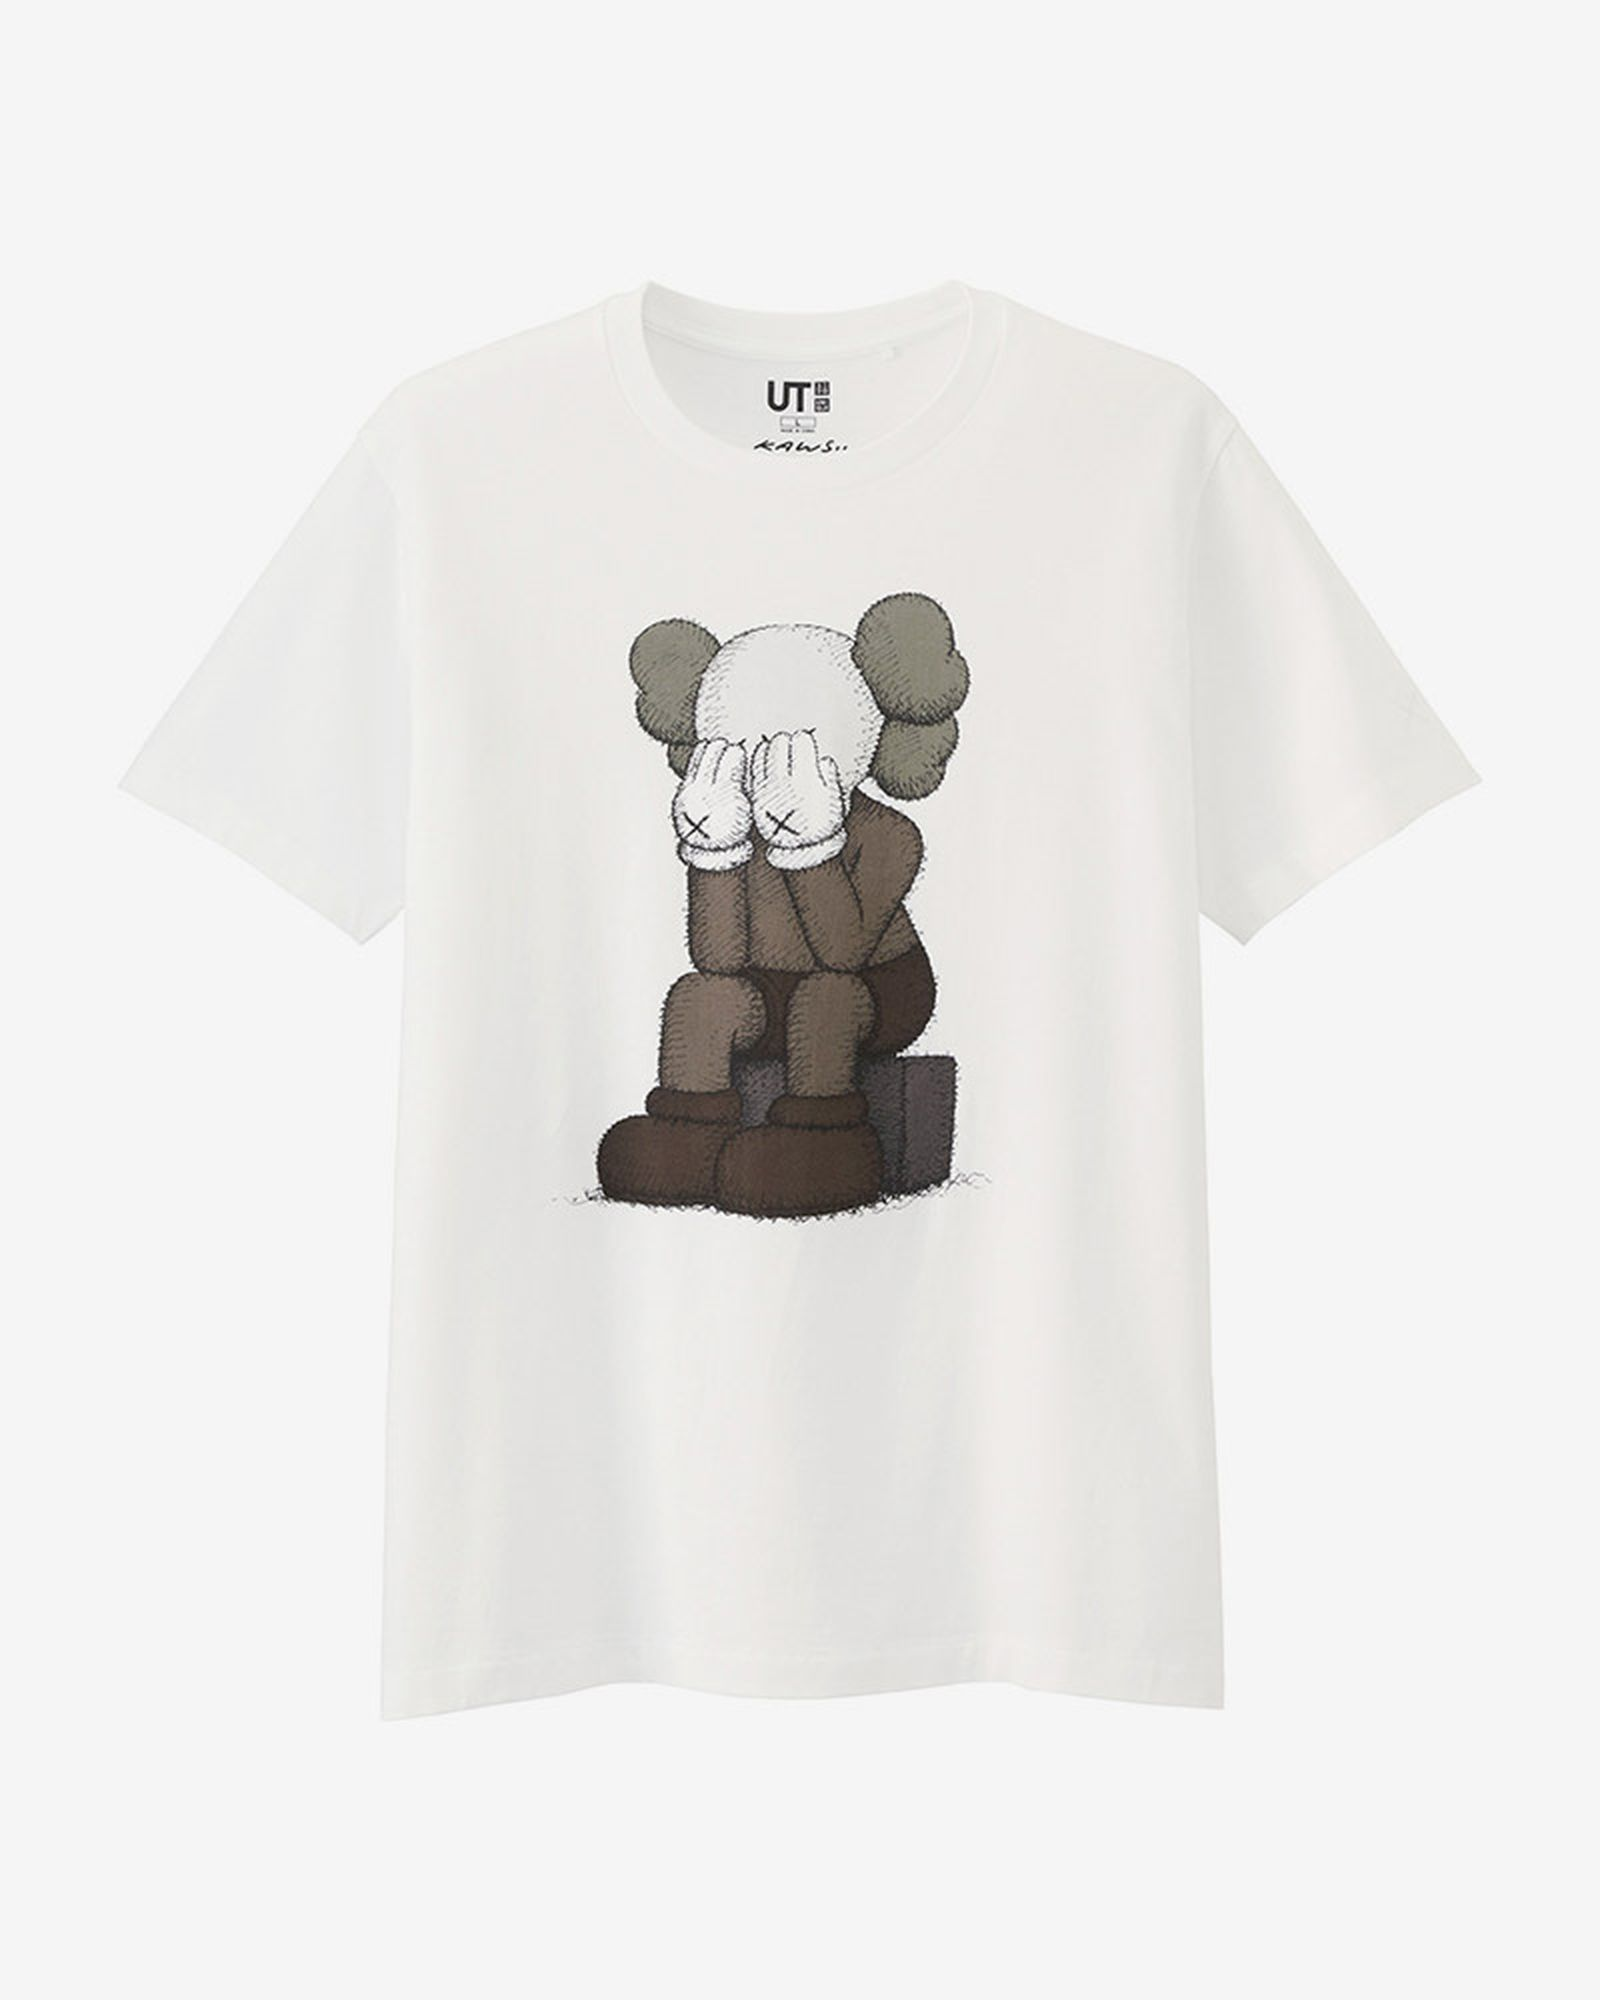 icon kaws living legends origins